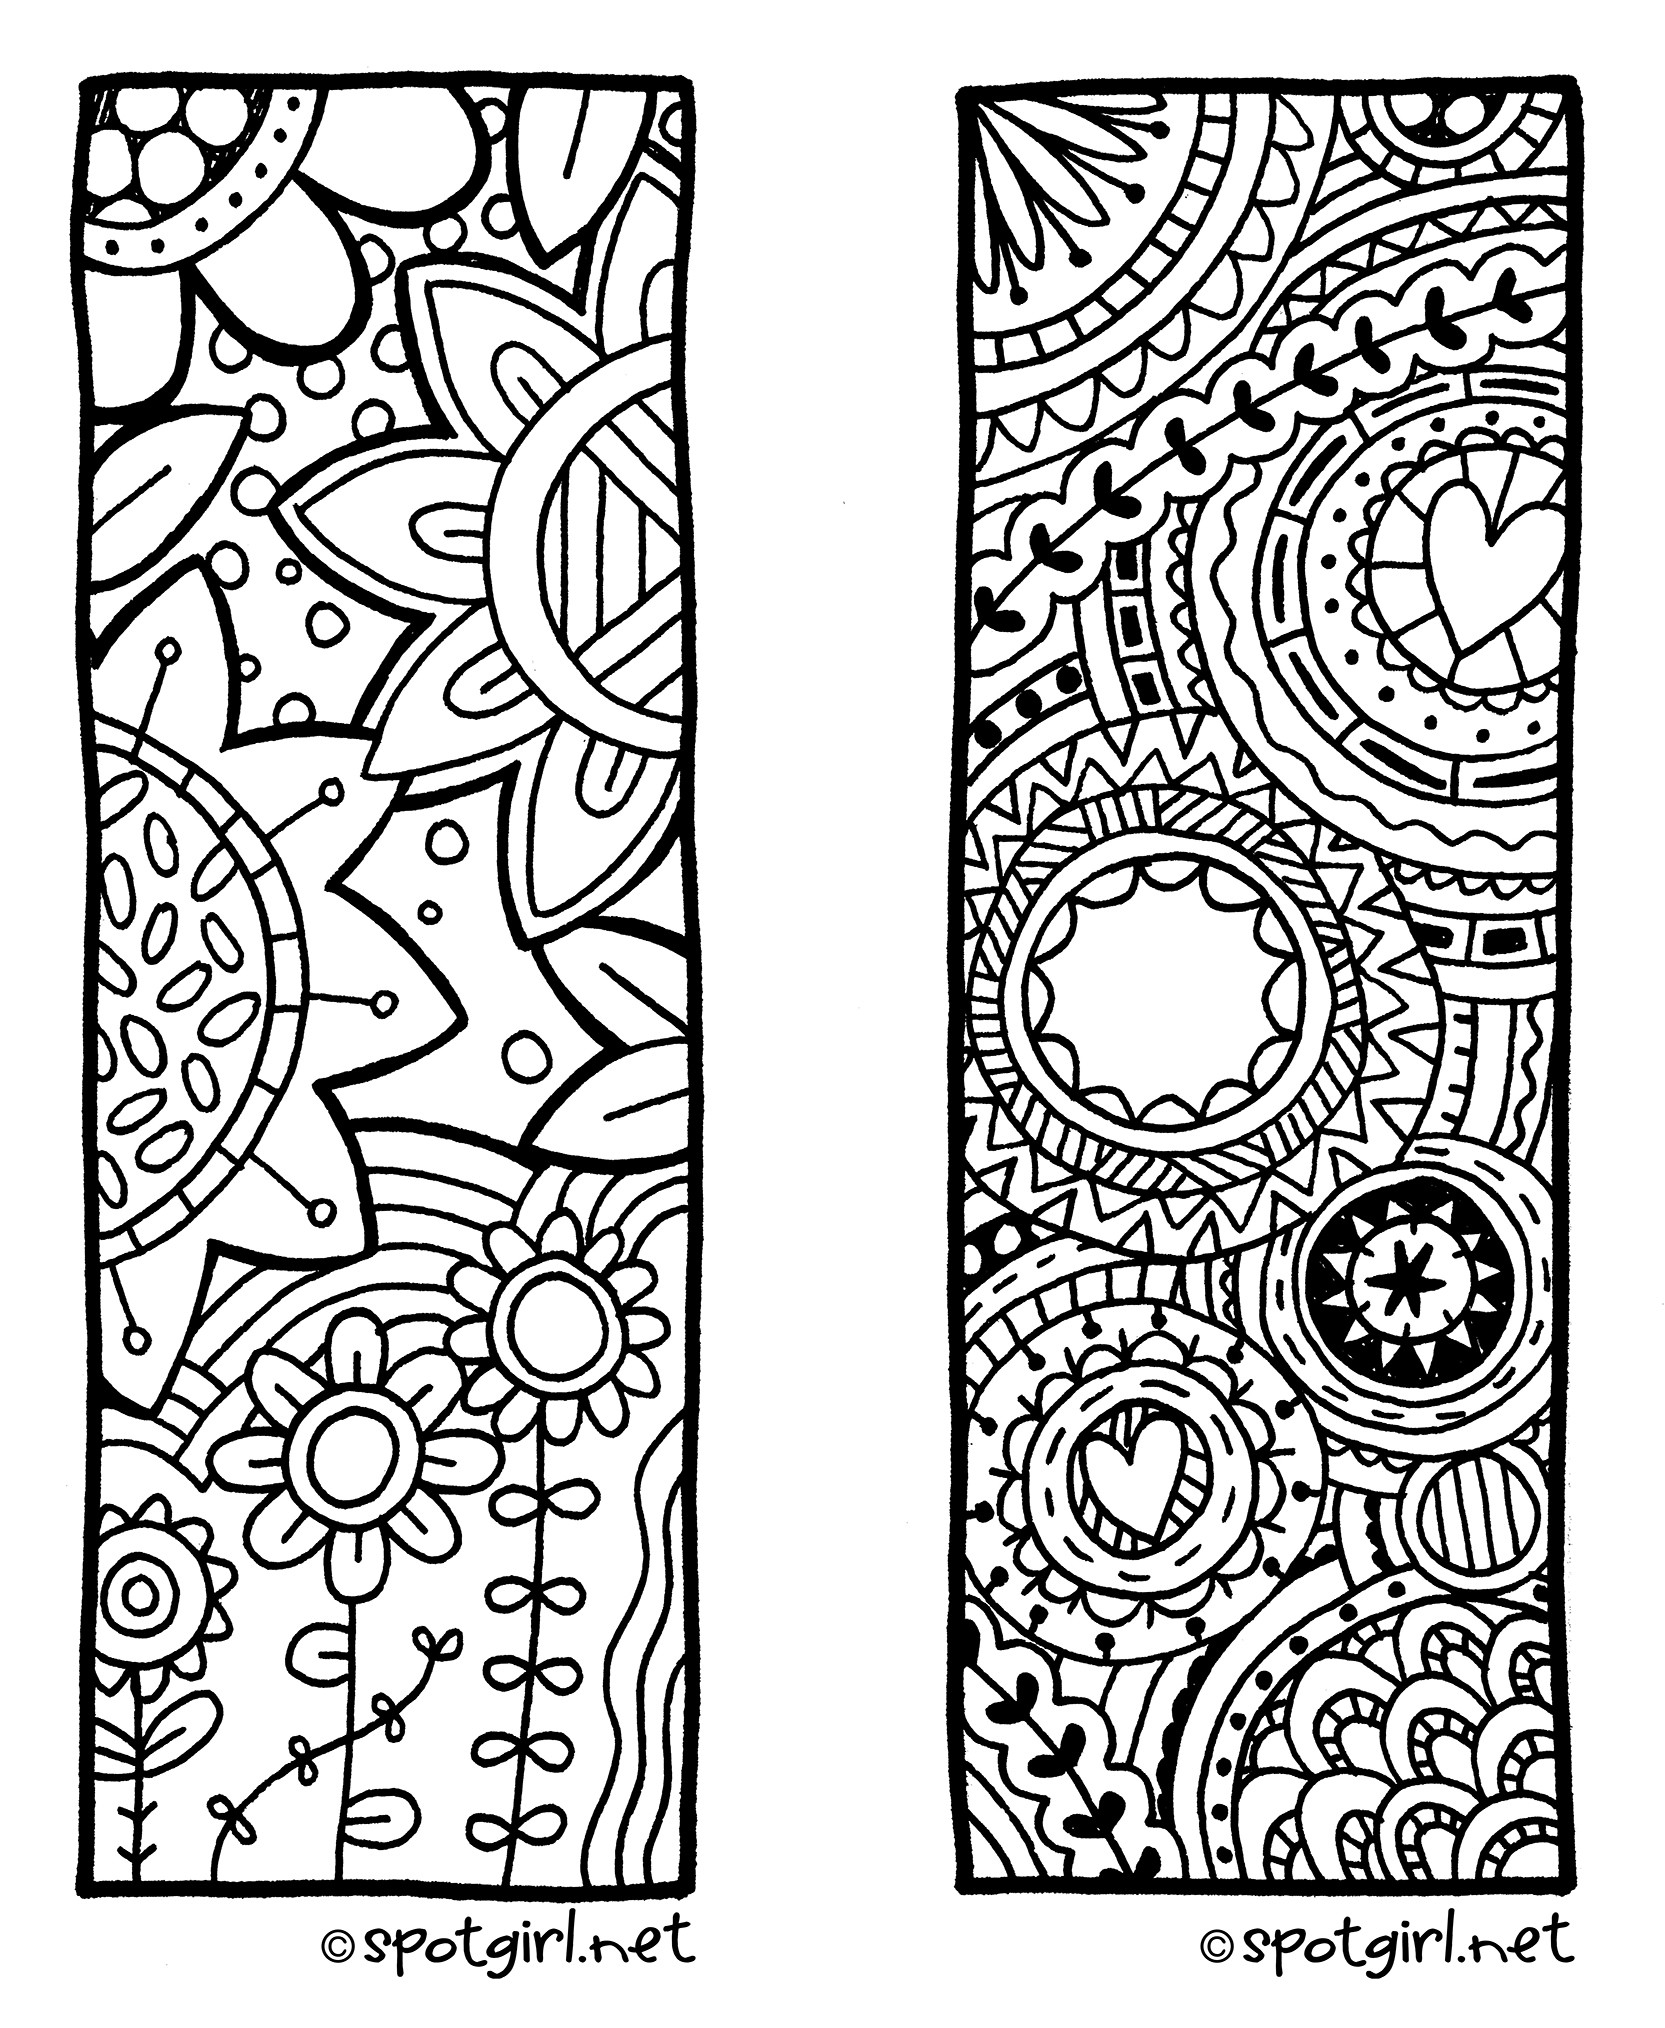 Black And White Bookmarks To Print Free - Printable 360 Degree regarding Black And White Bookmarks To Print 26664